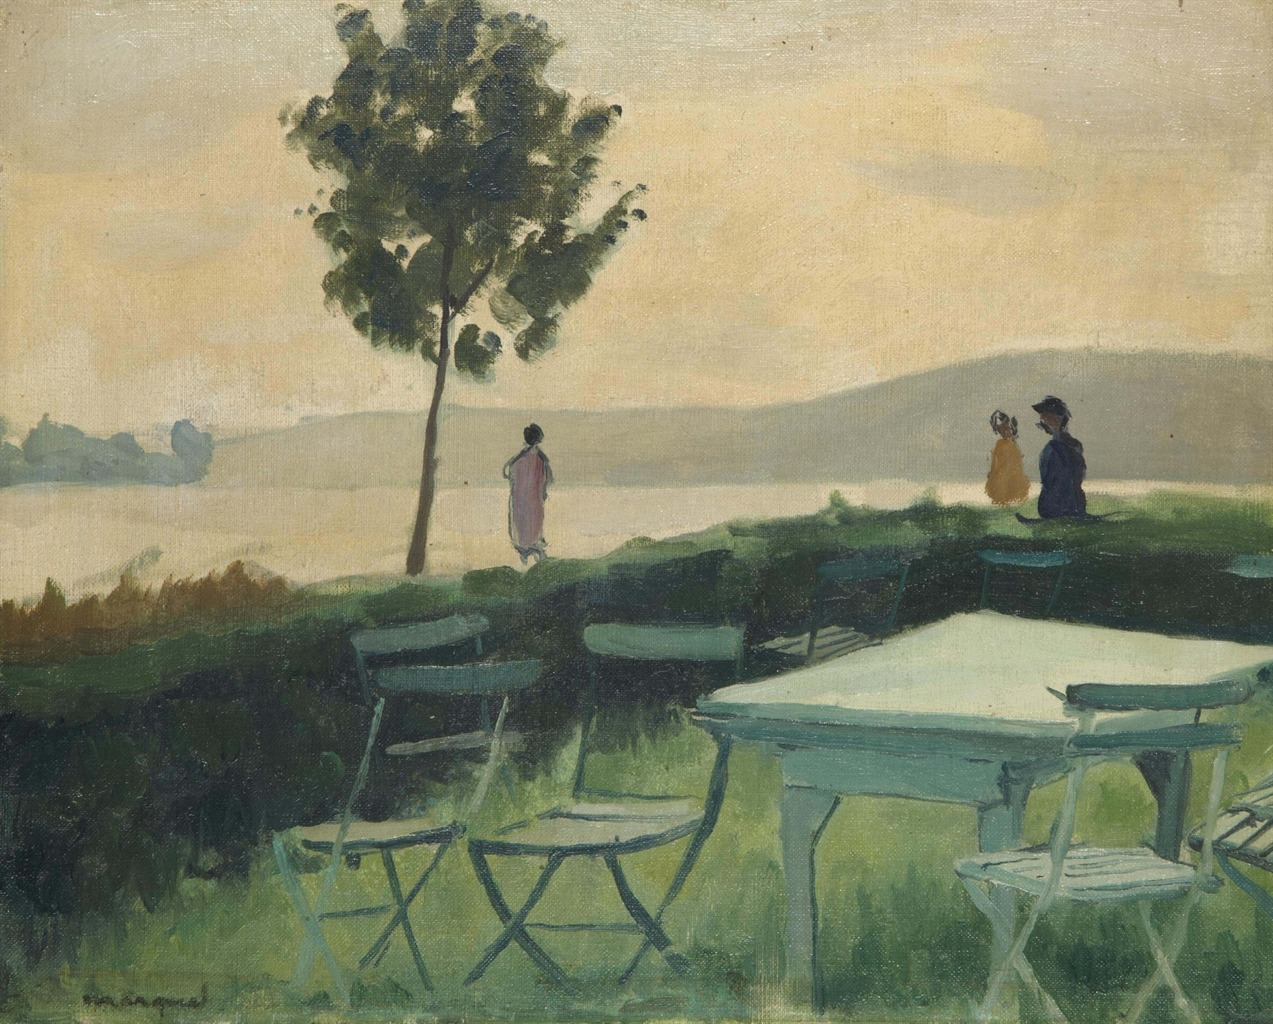 thunderstruck9:  Albert Marquet (French, 1875-1947), Terrasse à Vieux-Port, c.1927. Oil on artist's board, 32.5 x 40.5 cm.